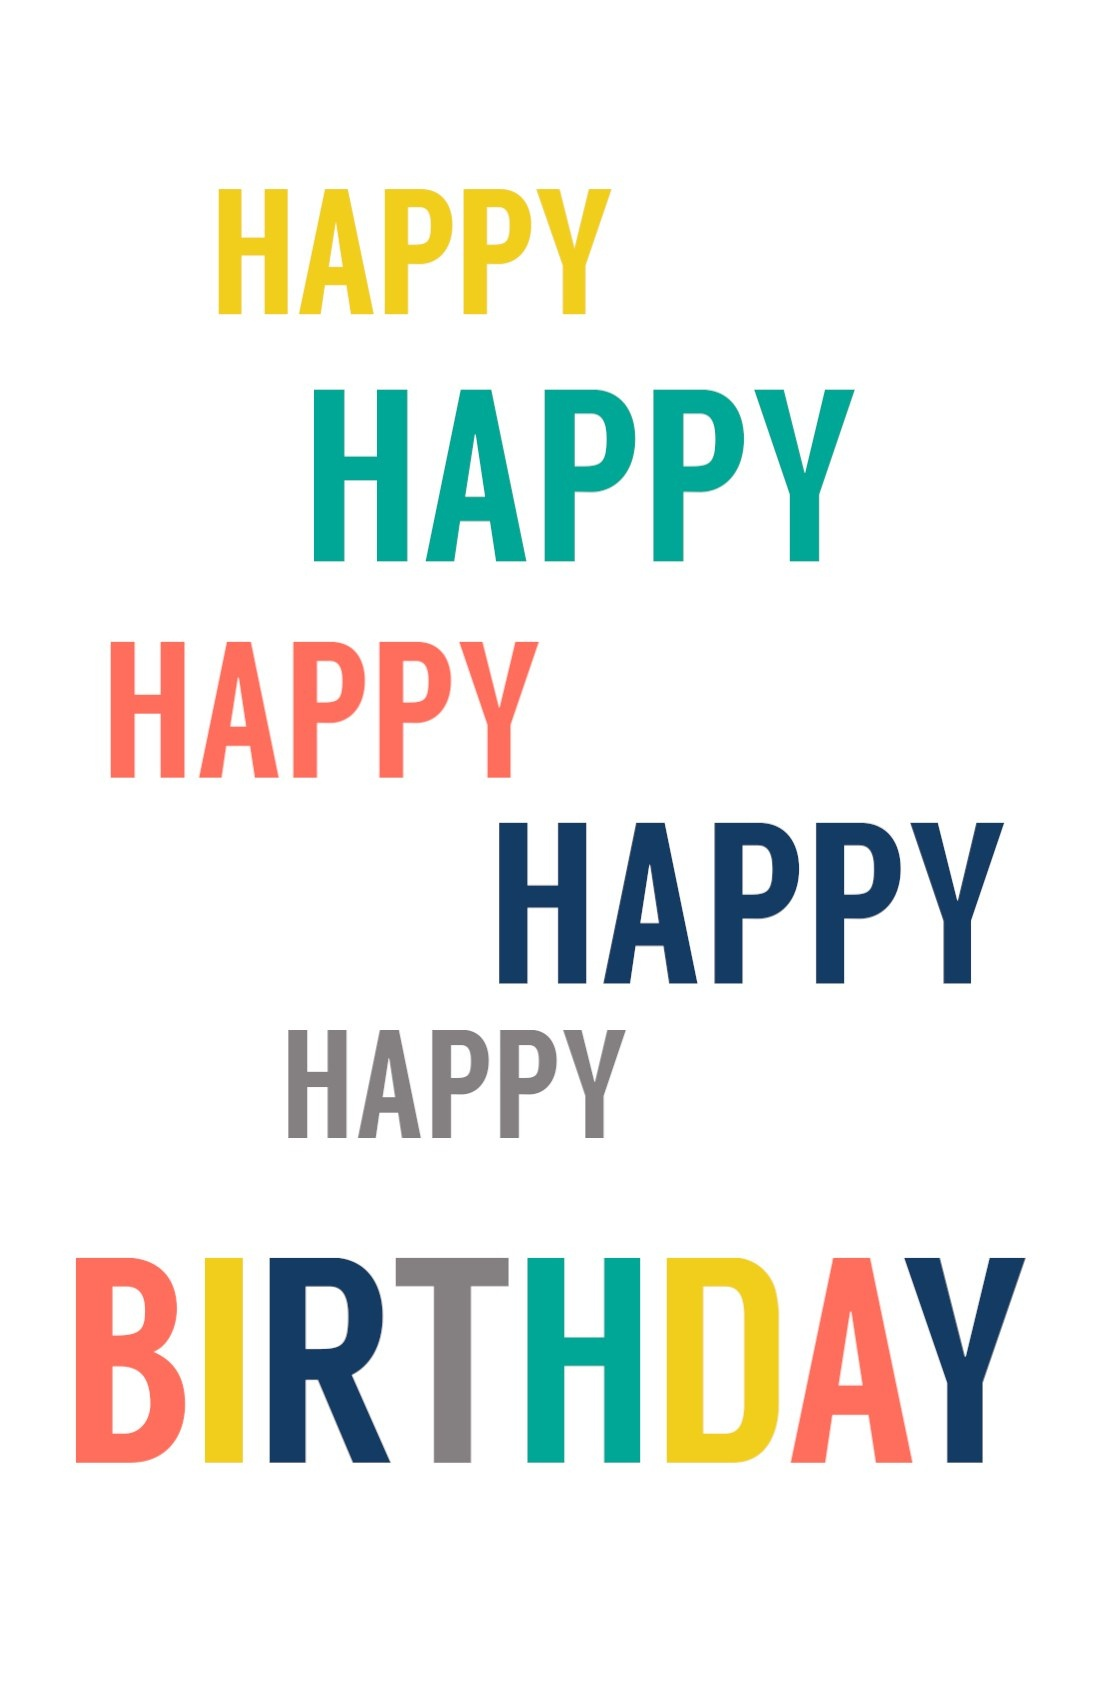 Free Printable Birthday Cards - Paper Trail Design - Free Printable Cards No Sign Up